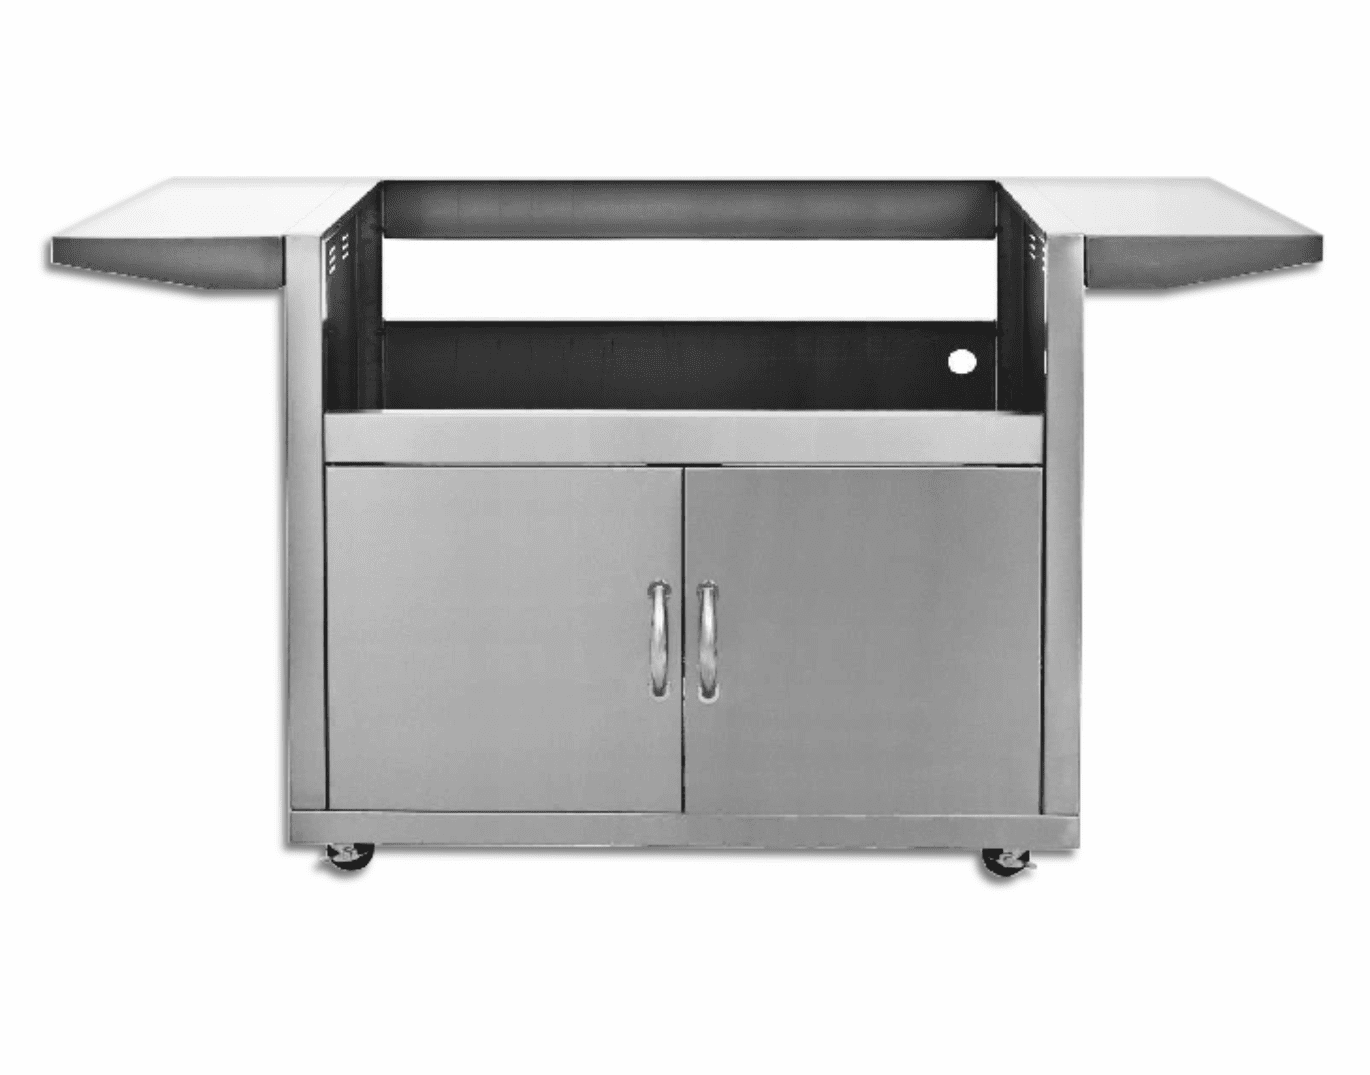 Blaze 5 burner Cart for 40 inch built in grill BLZ-5-CART